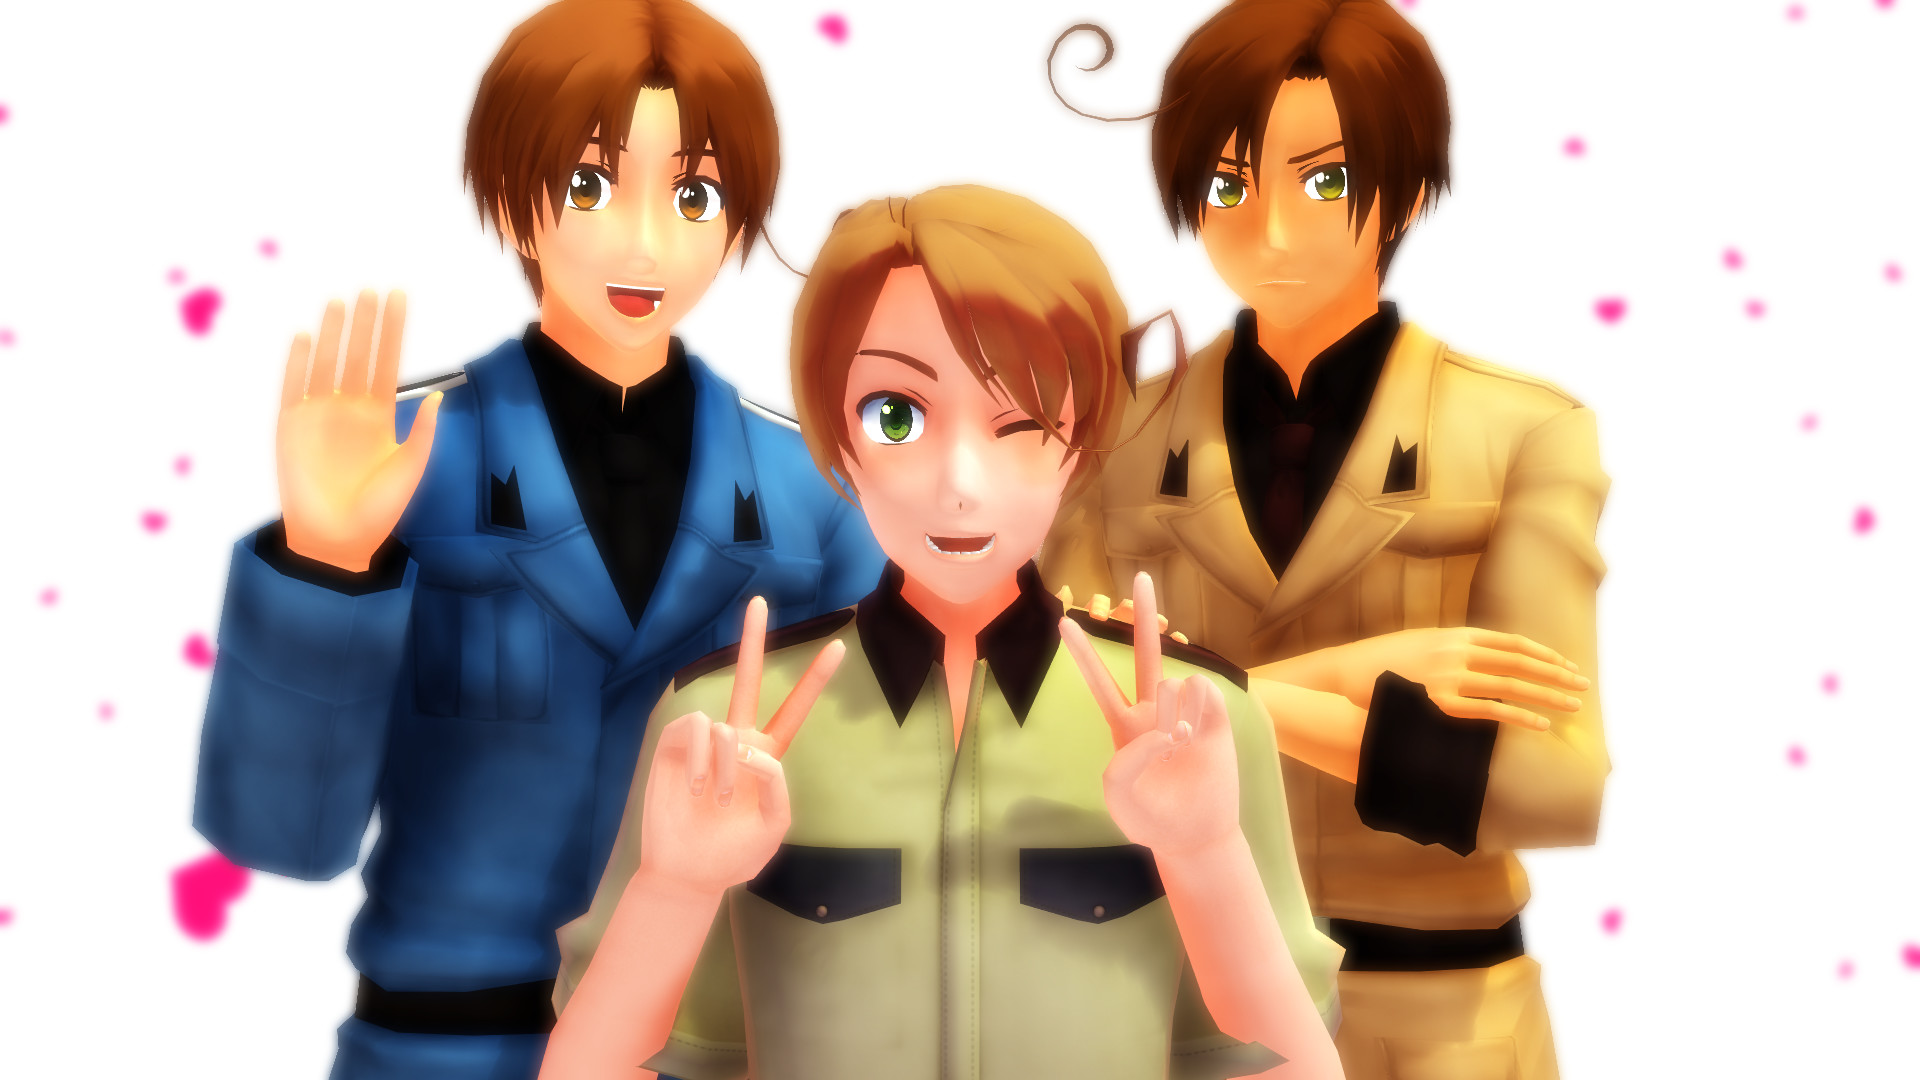 1920x1080 Hetalia images Italy, Seborga and Romano. All three Italian brothers HD  wallpaper and background photos